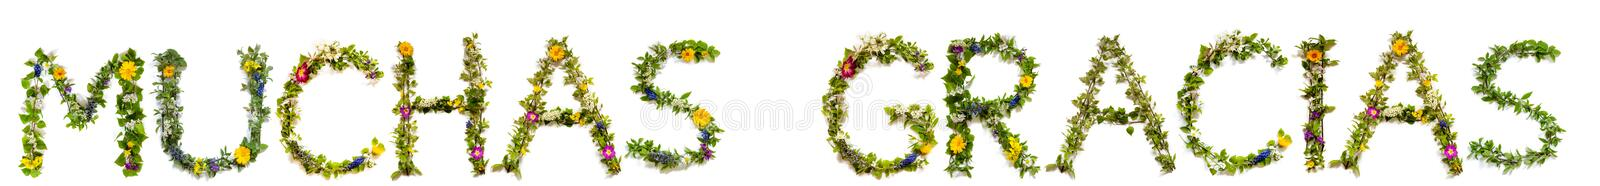 Flower And Blossom Letter Building Word Muchas Gracias Means Thank You. Flower, Branches And Blossom Letter Building Spanish Word Muchas Gracias Means Thank You stock images